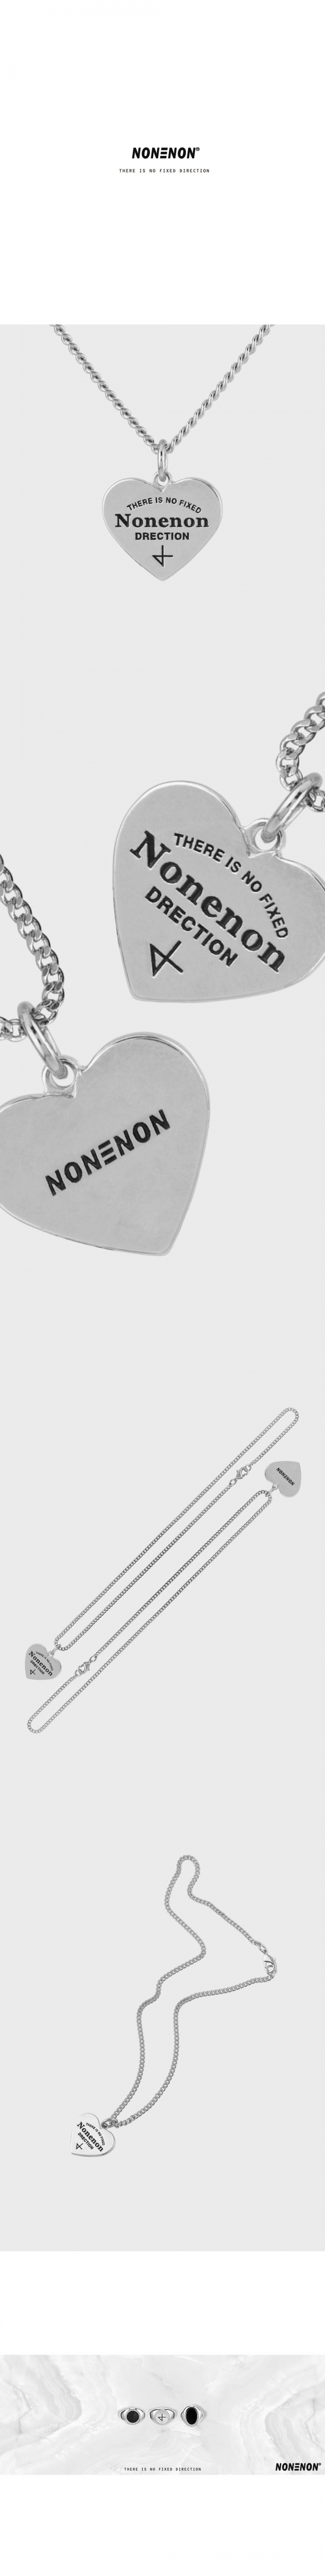 논논(NONENON) NEW LOGO LOVE NEC